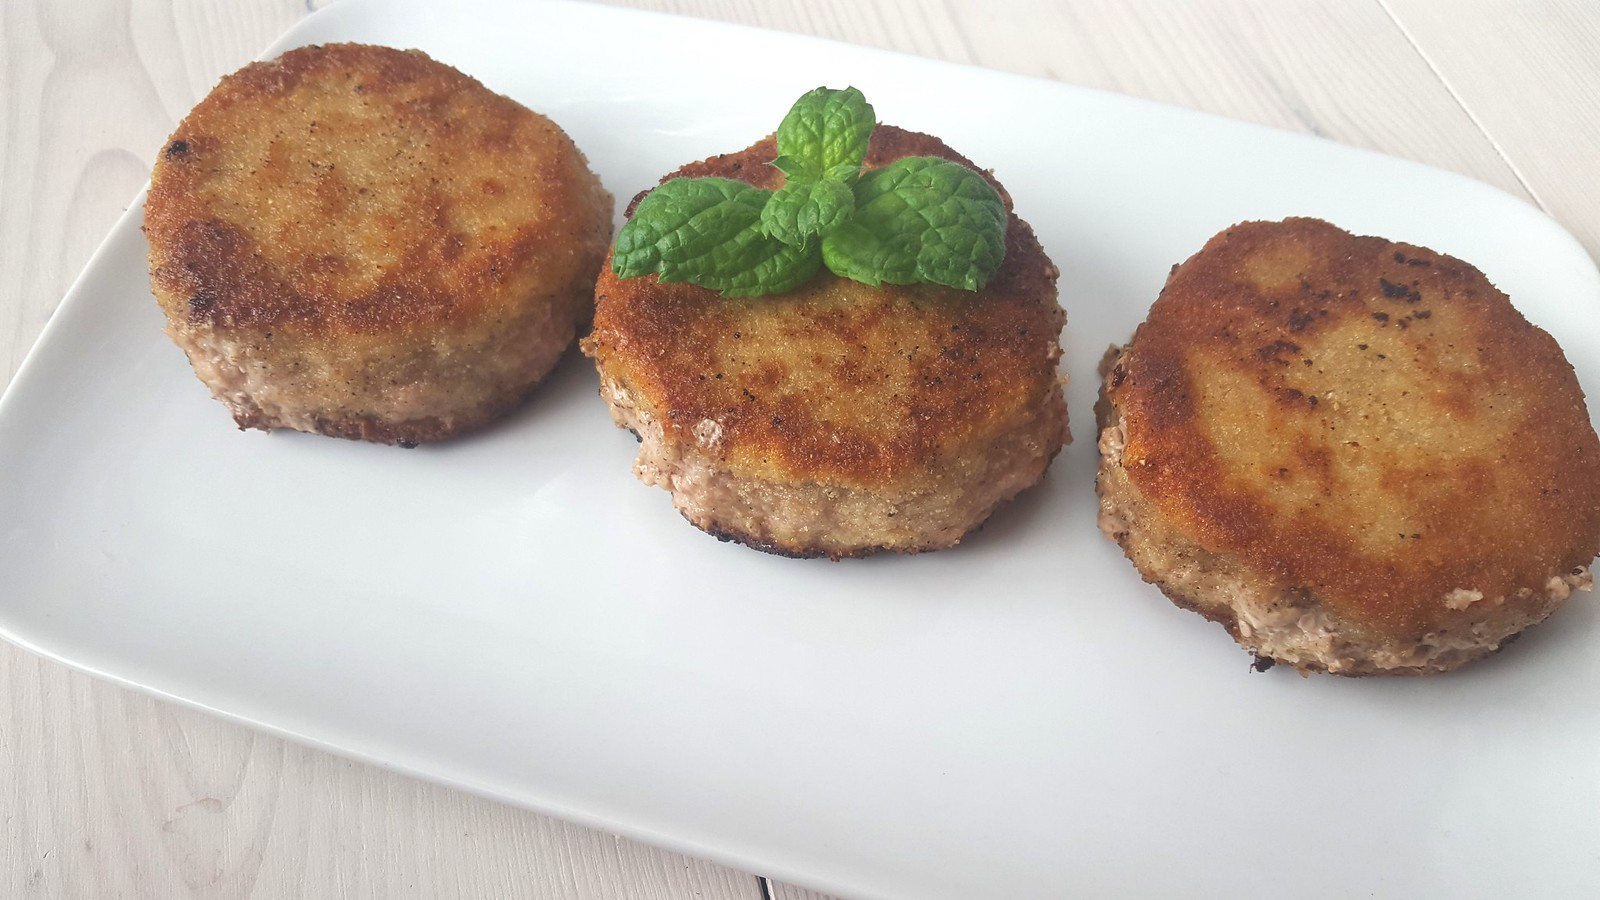 Recipe for Homemade Danish Breaded Pork Patties (Karbonader)